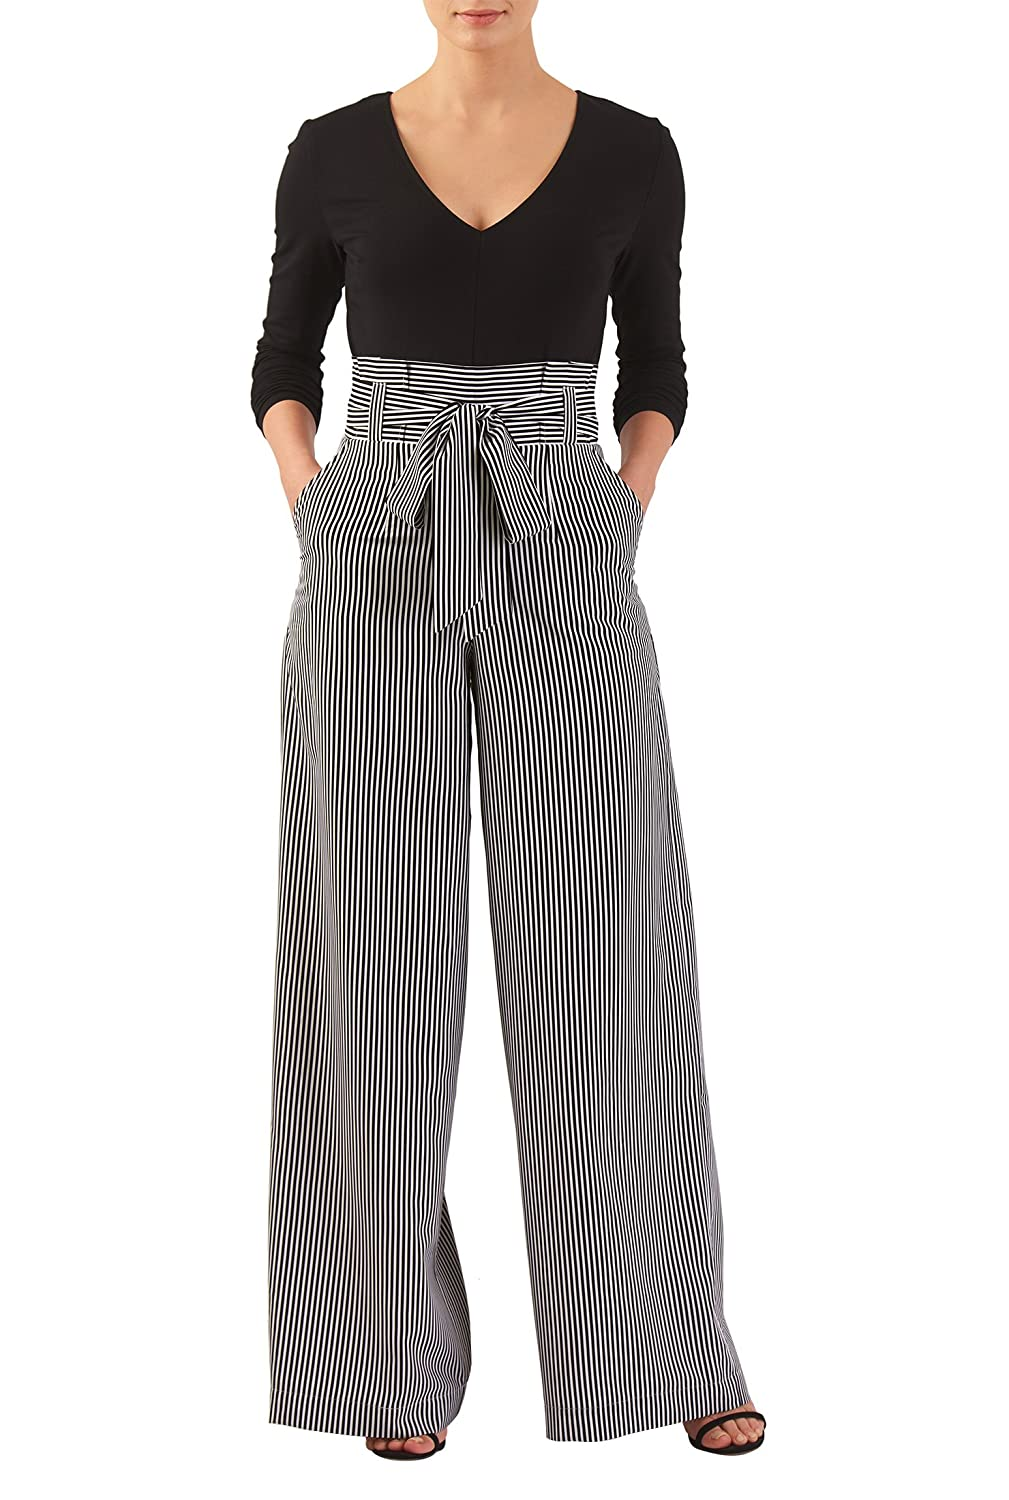 Vintage High Waisted Trousers, Sailor Pants, Jeans eShakti Womens Stripe Print Mixed Media Jumpsuit $64.95 AT vintagedancer.com